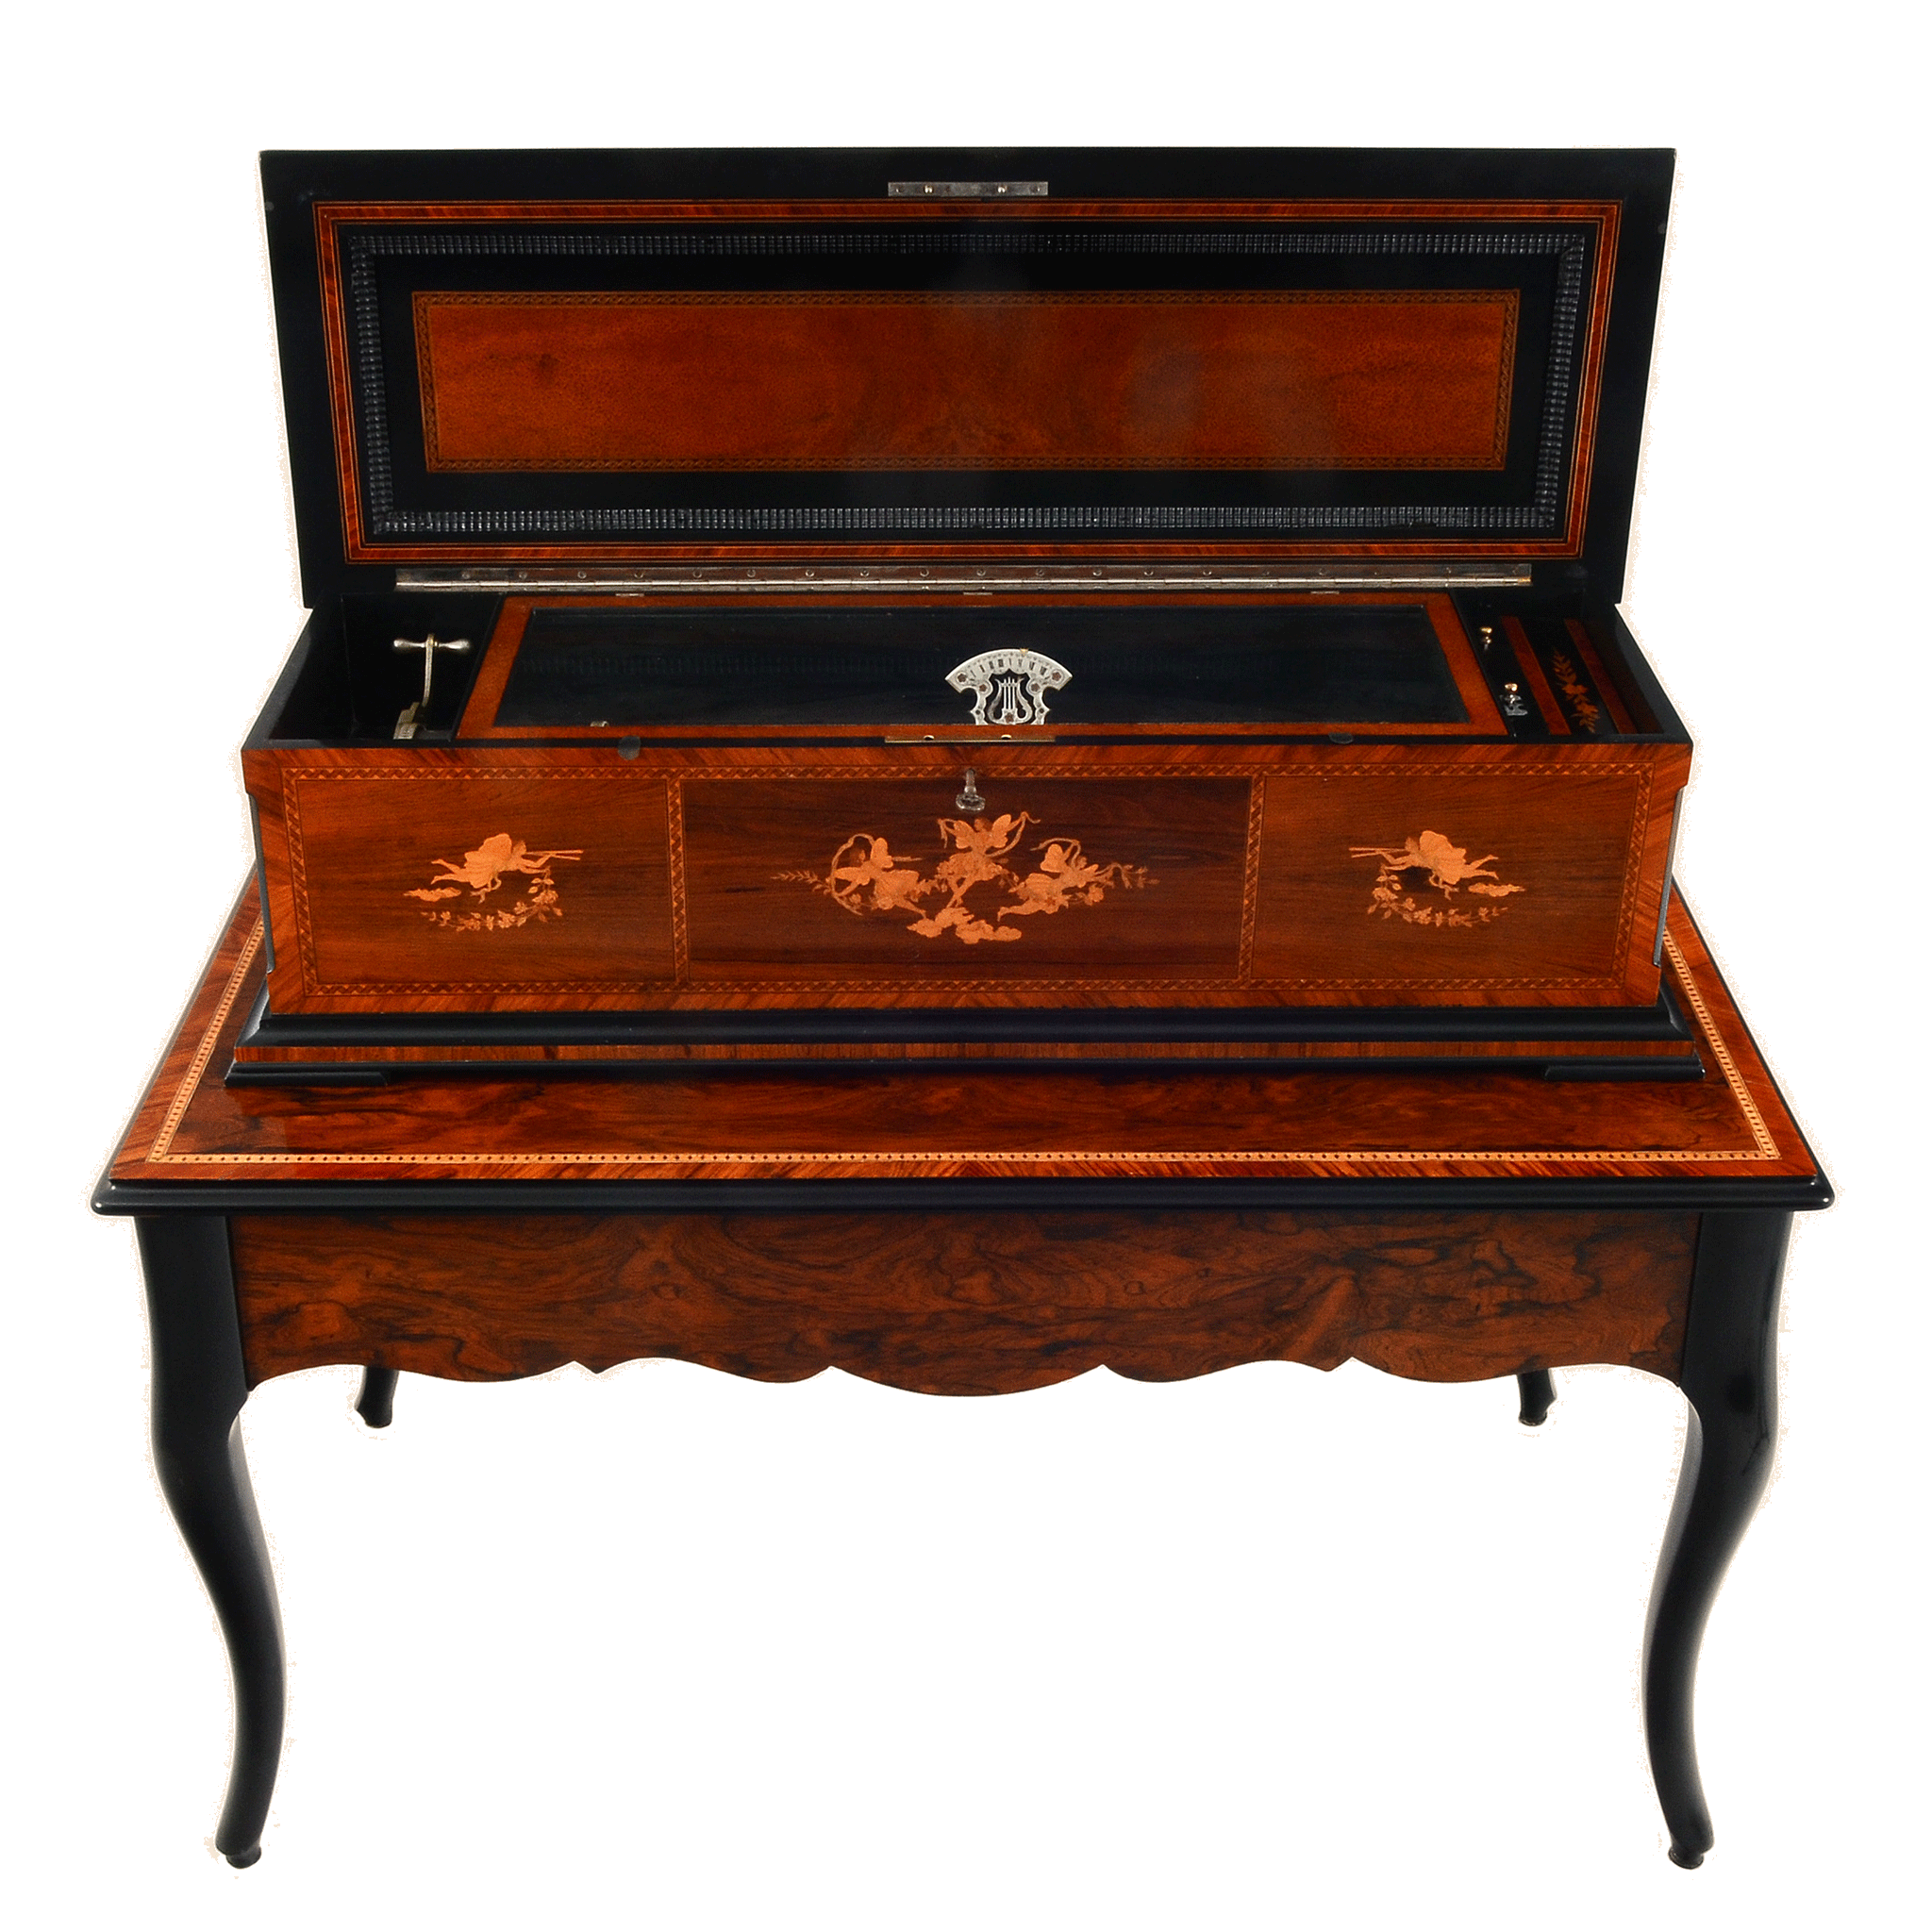 Swiss Cylinder Music Box with Rosewood Case and Table